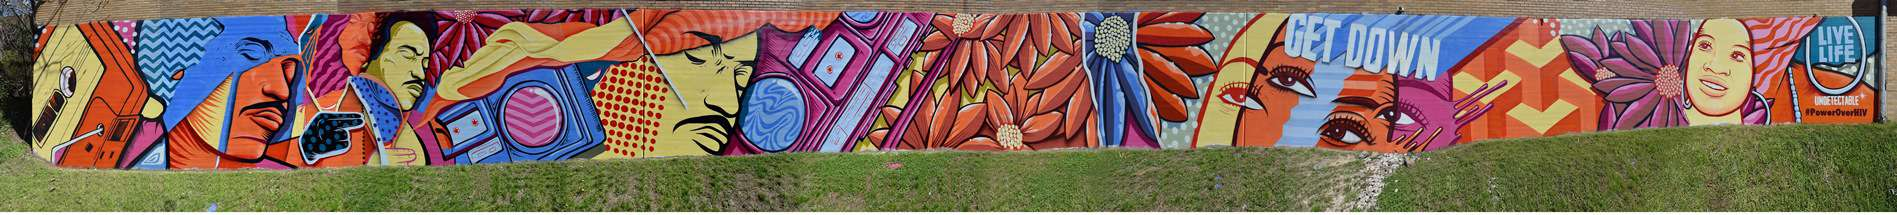 Power_Over_HIV_Mural